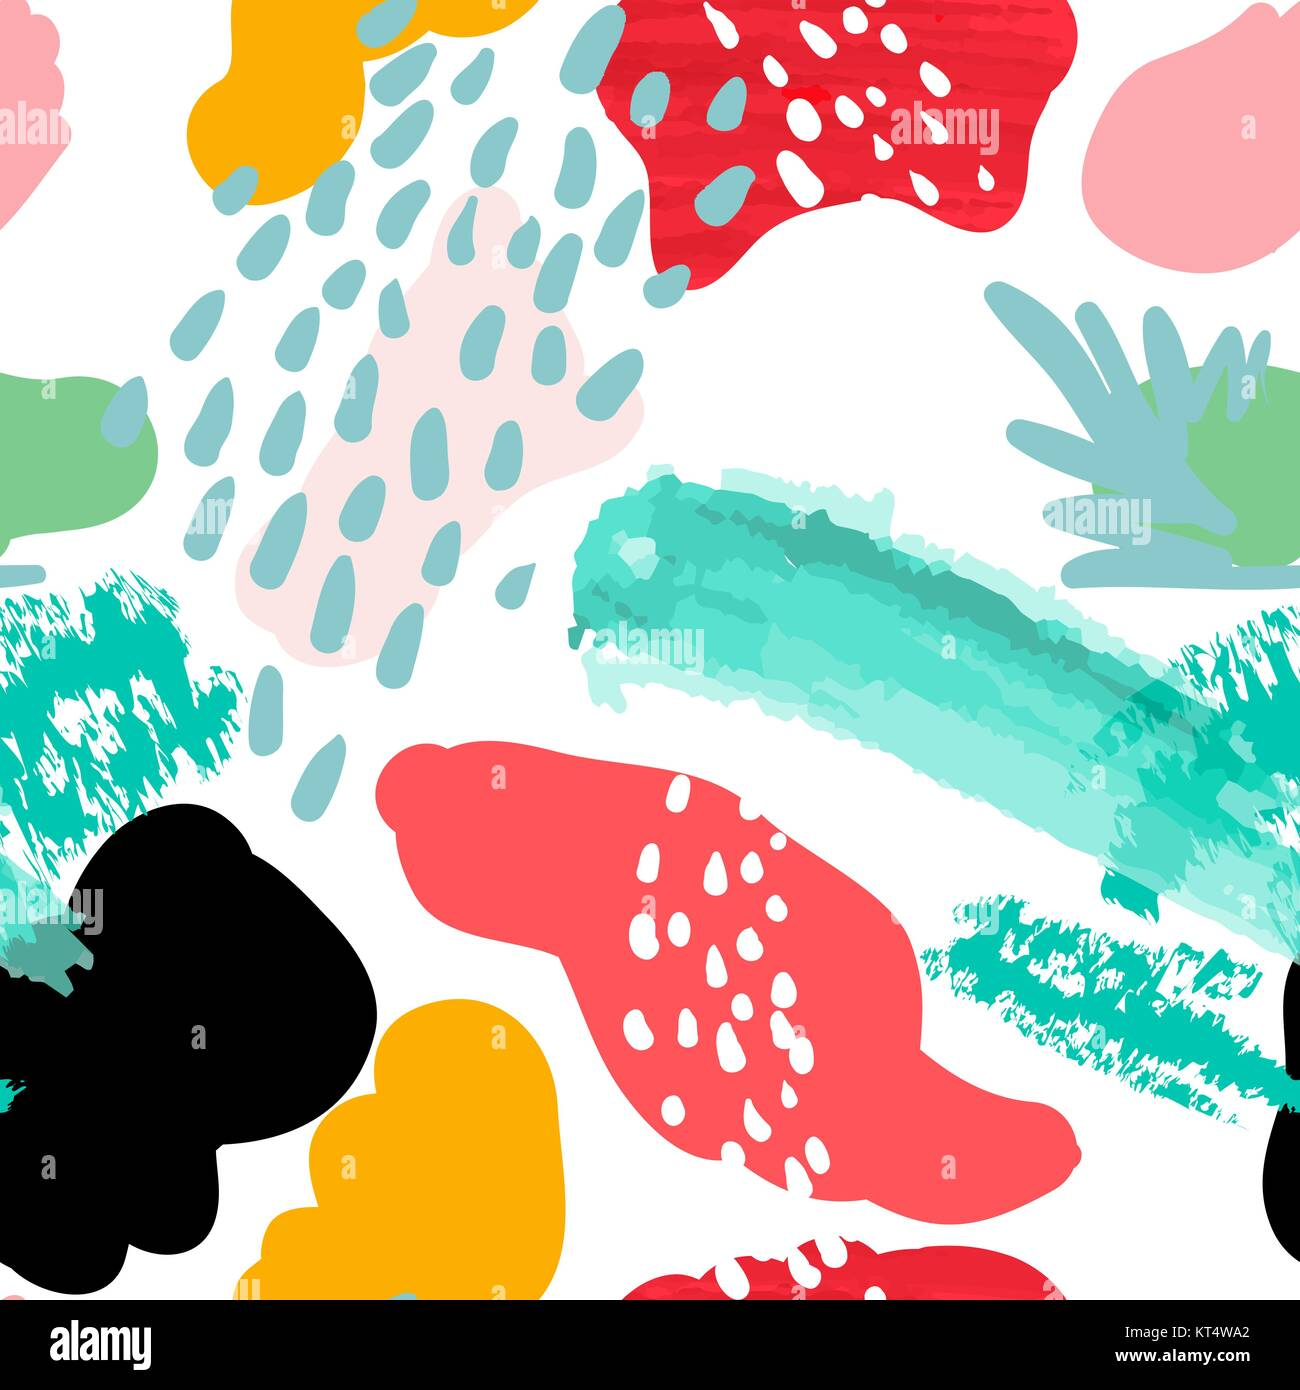 Vector stylized seamless pattern background hand-drawn illustration. Simple shape, bright pattern. Naive art style. - Stock Vector